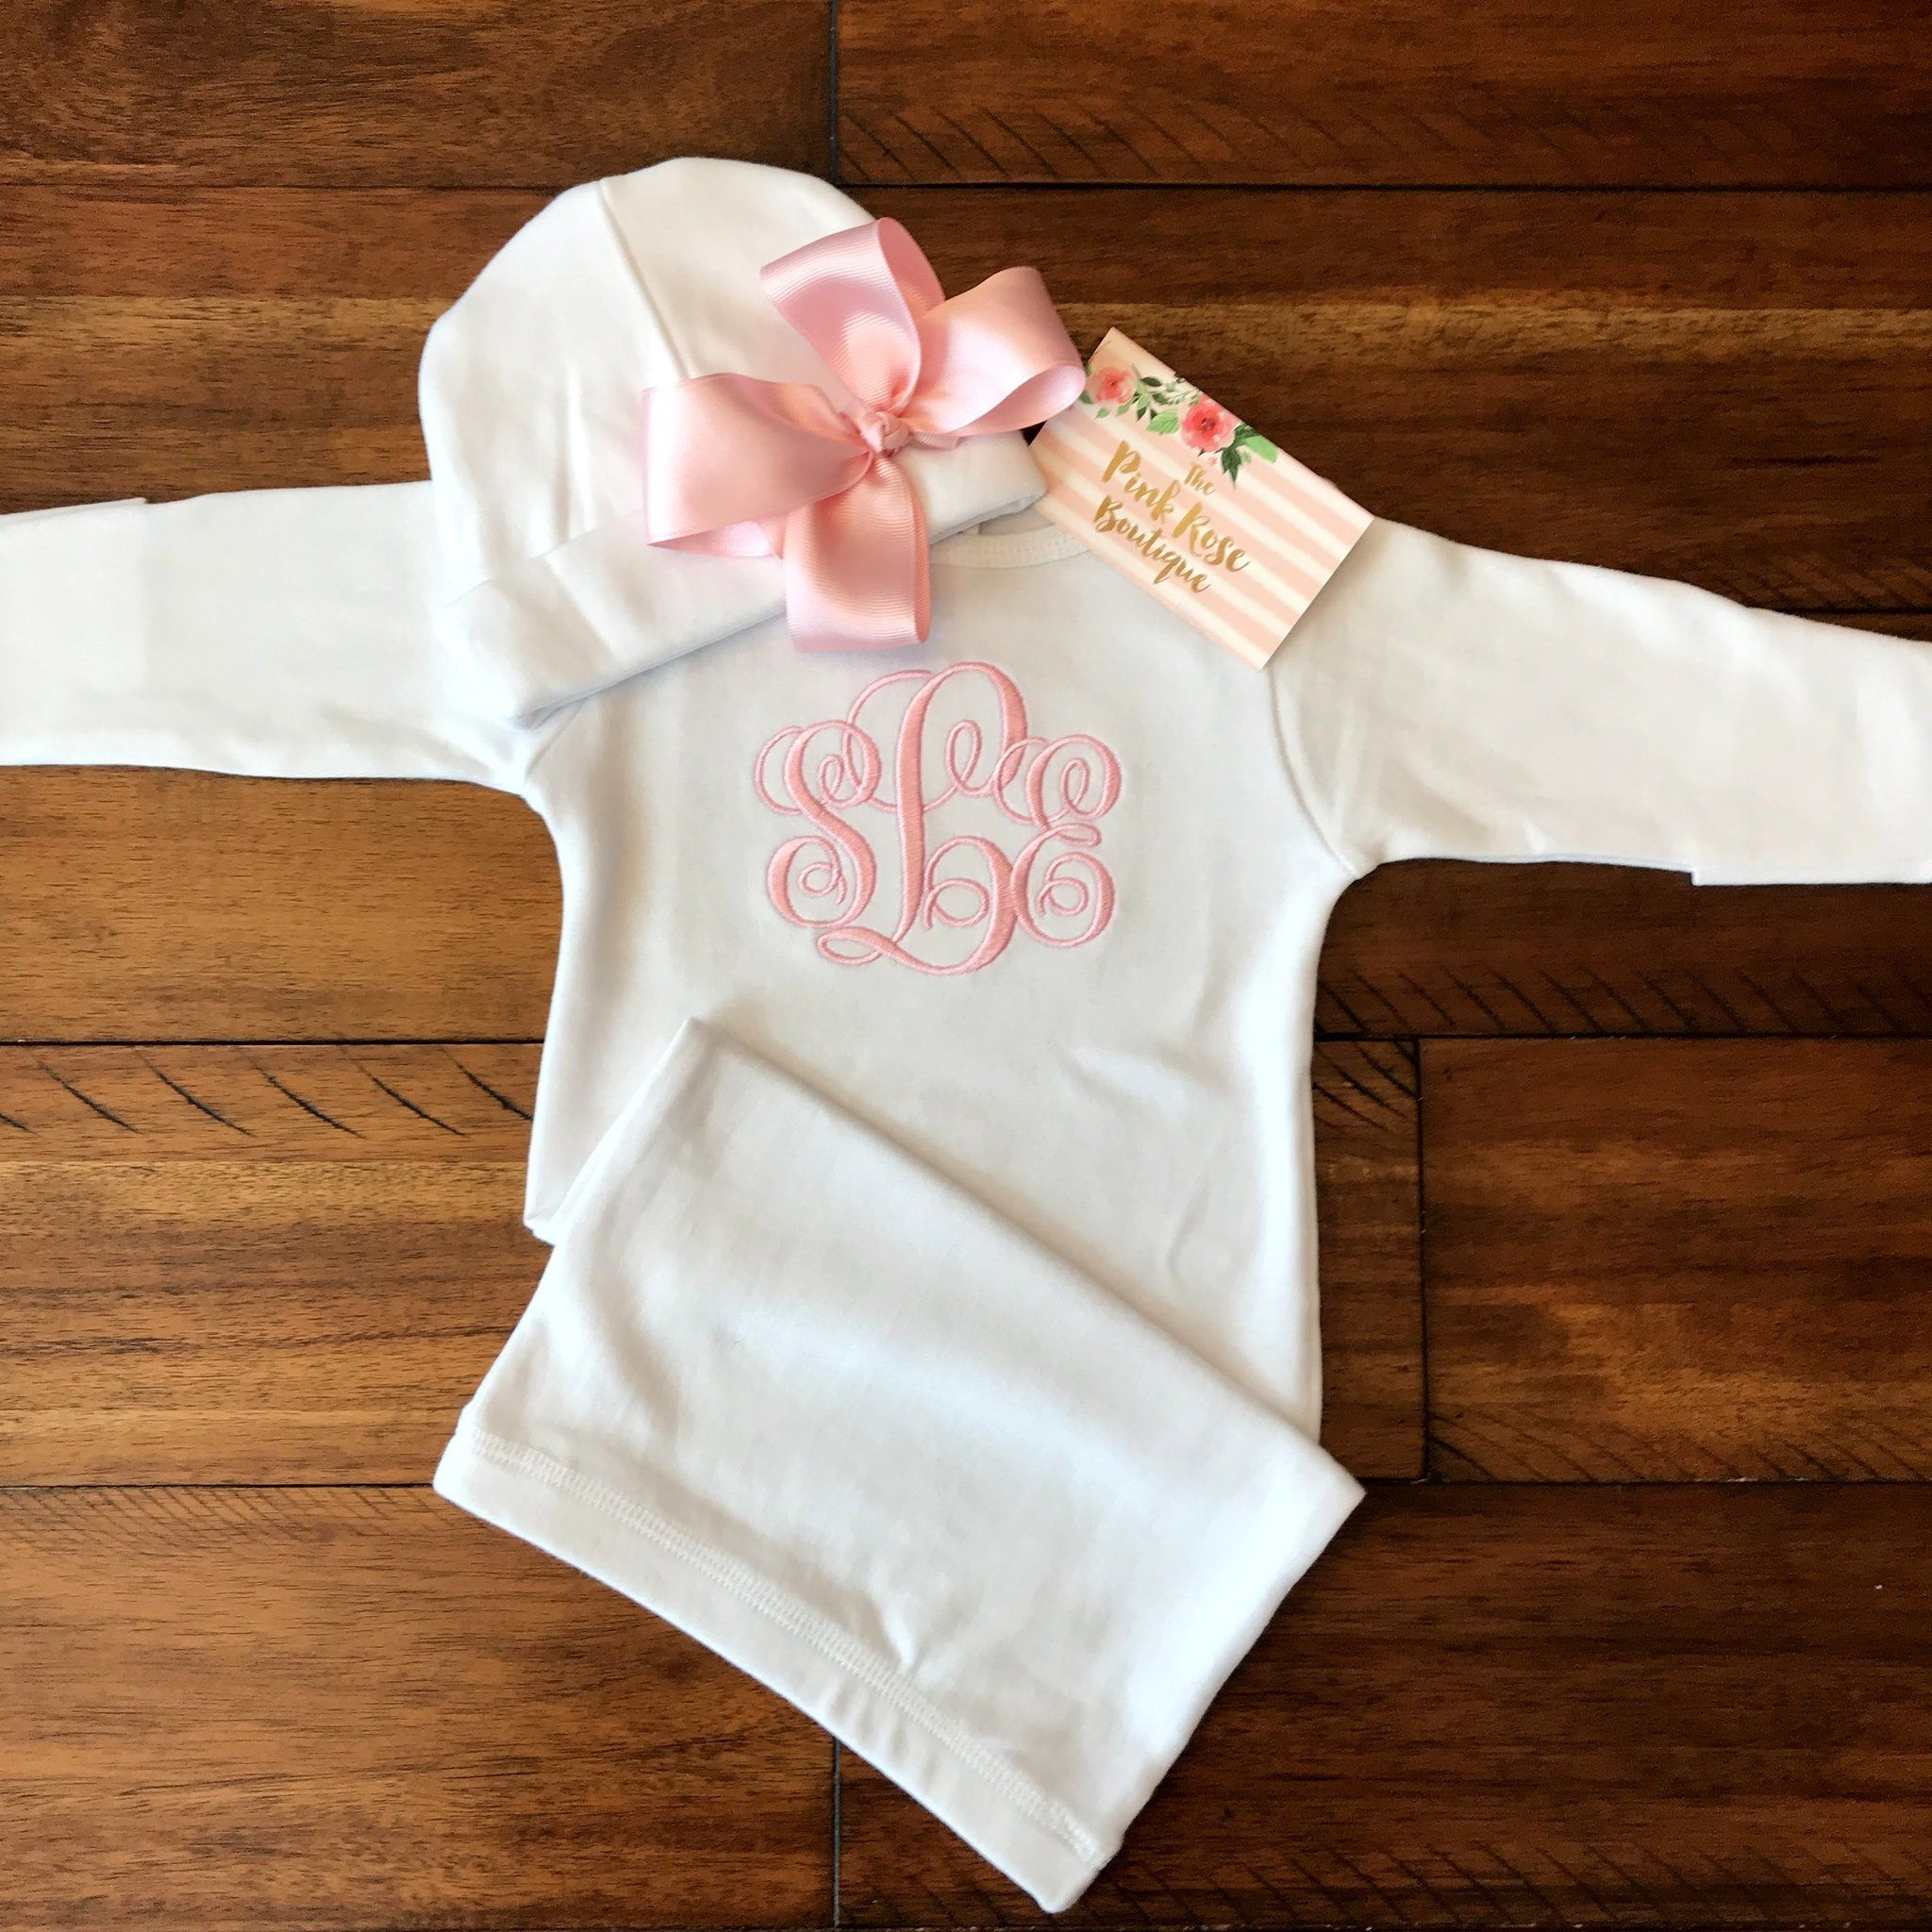 Personalized Baby Gown - White Gown W/ Light Pink Bow Cap | Baby ...